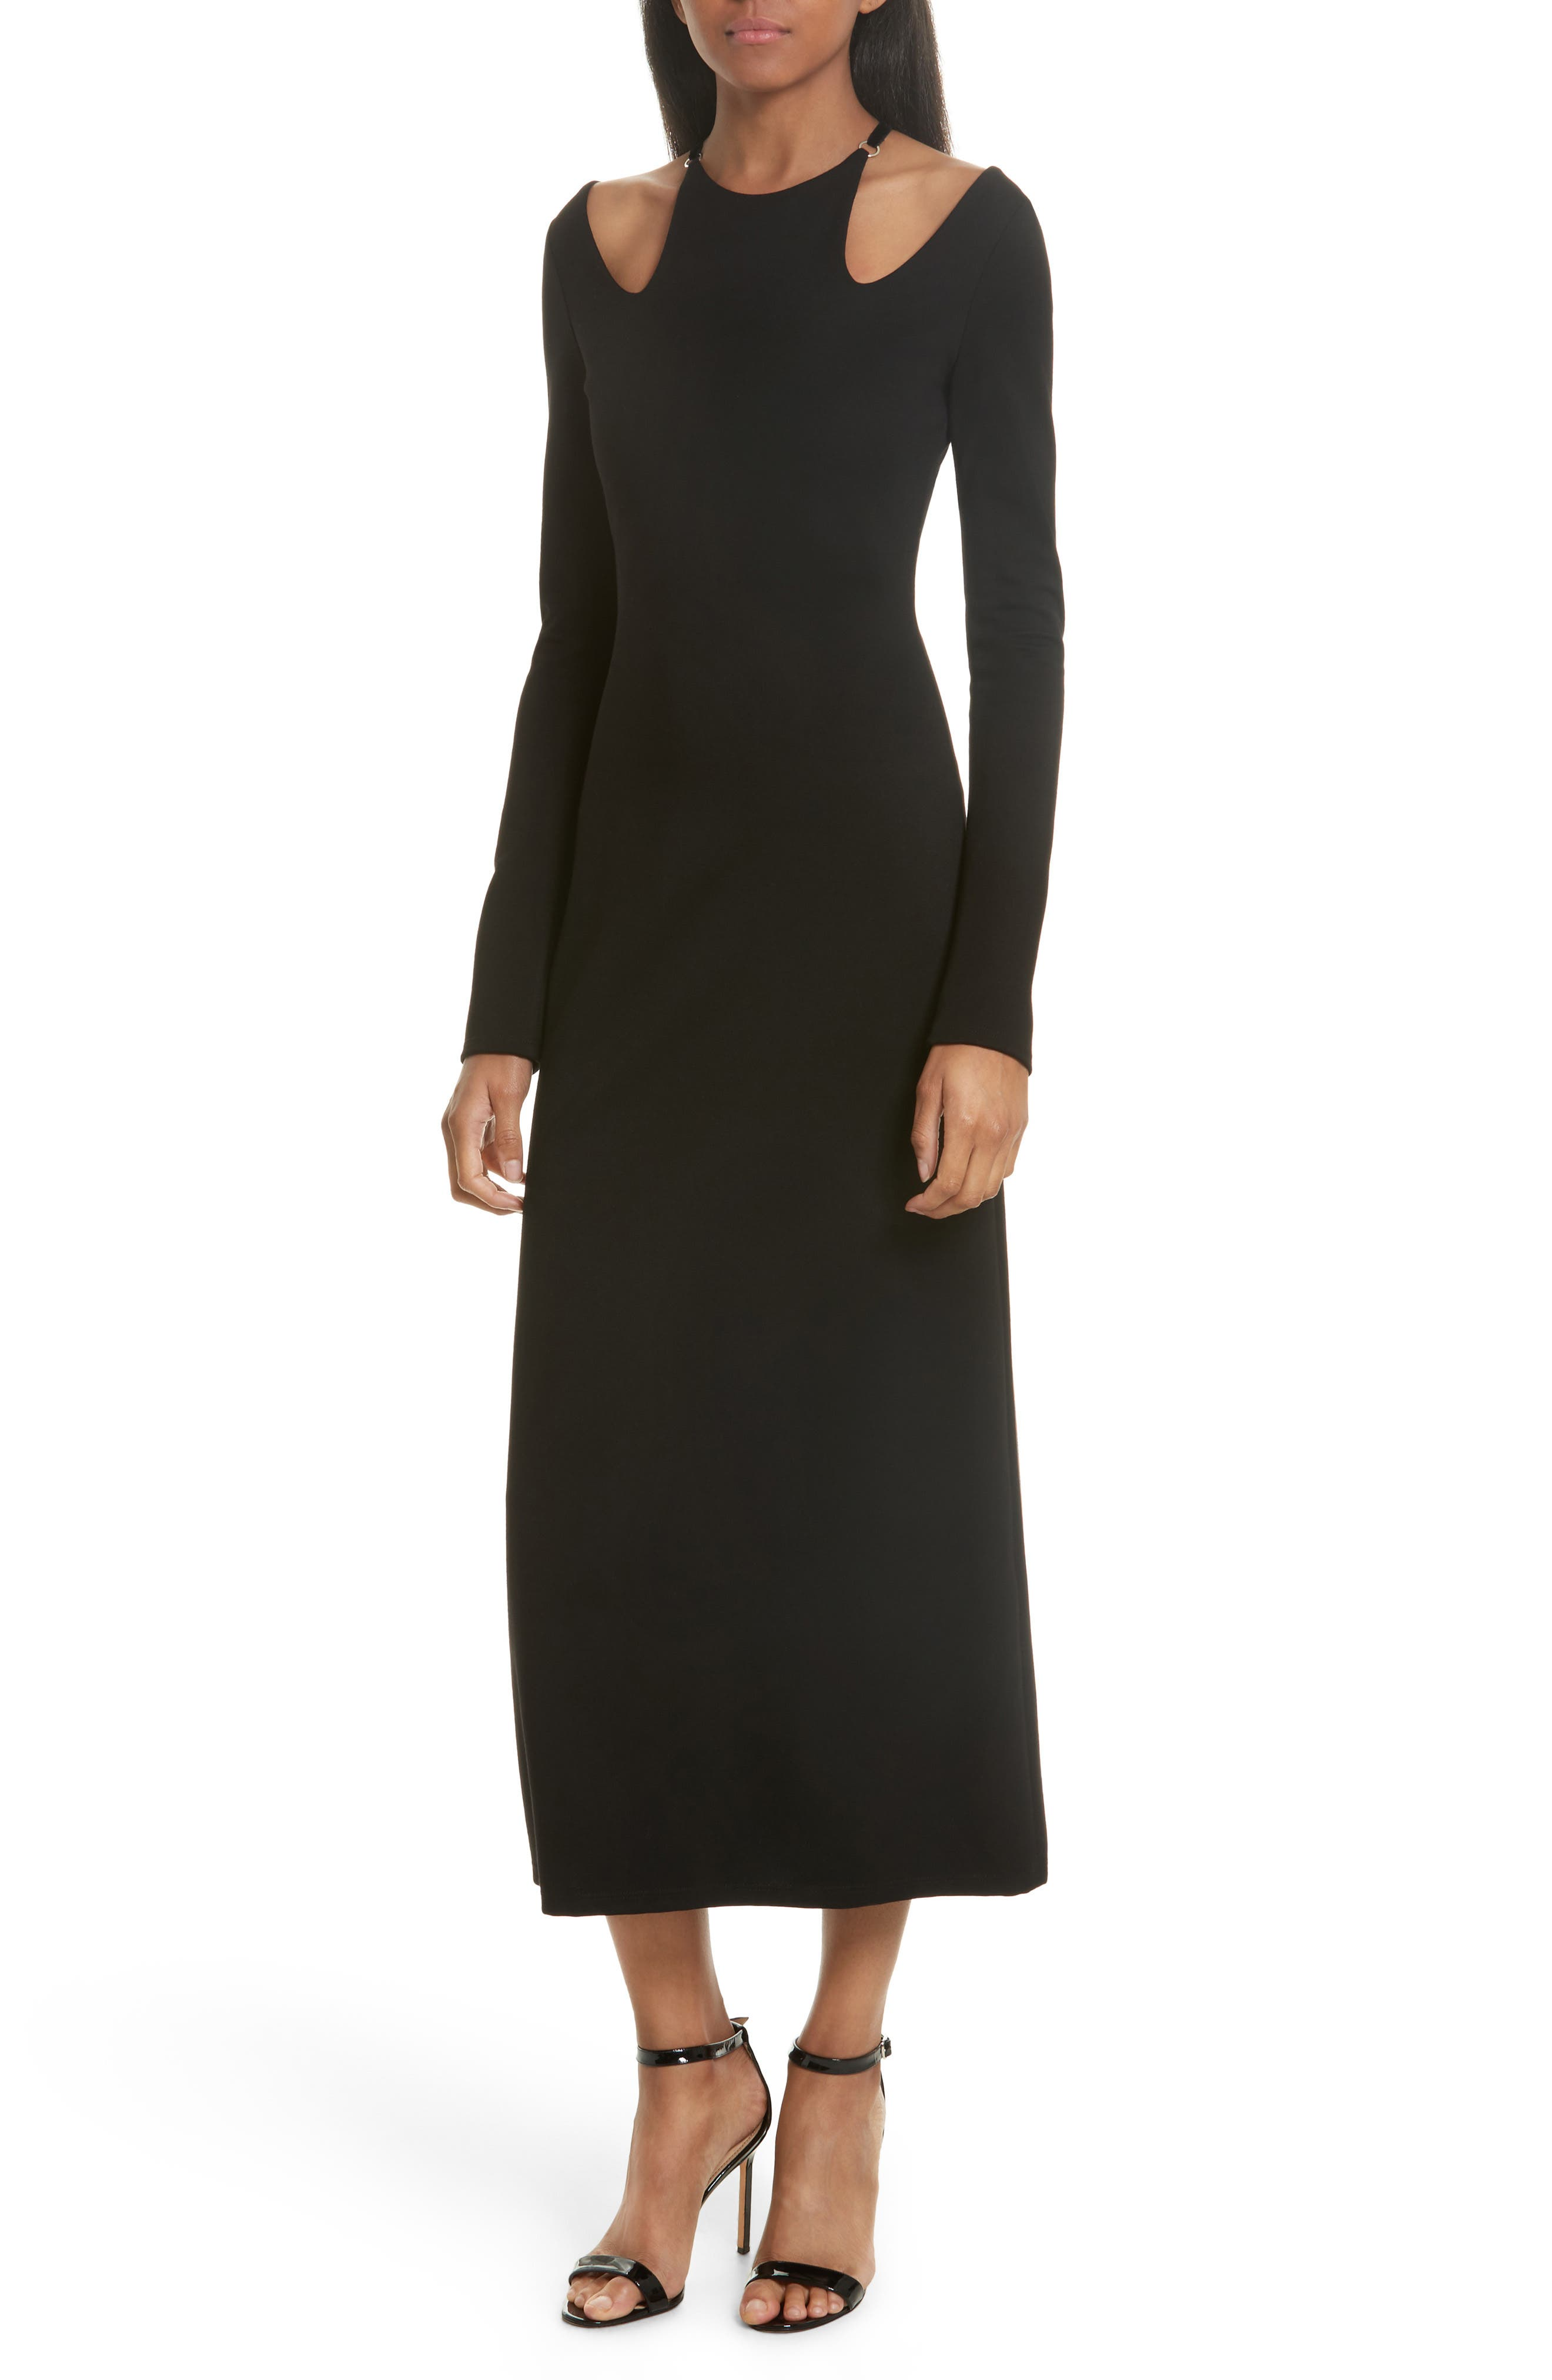 A.L.C. Jessa Cutout Midi Dress